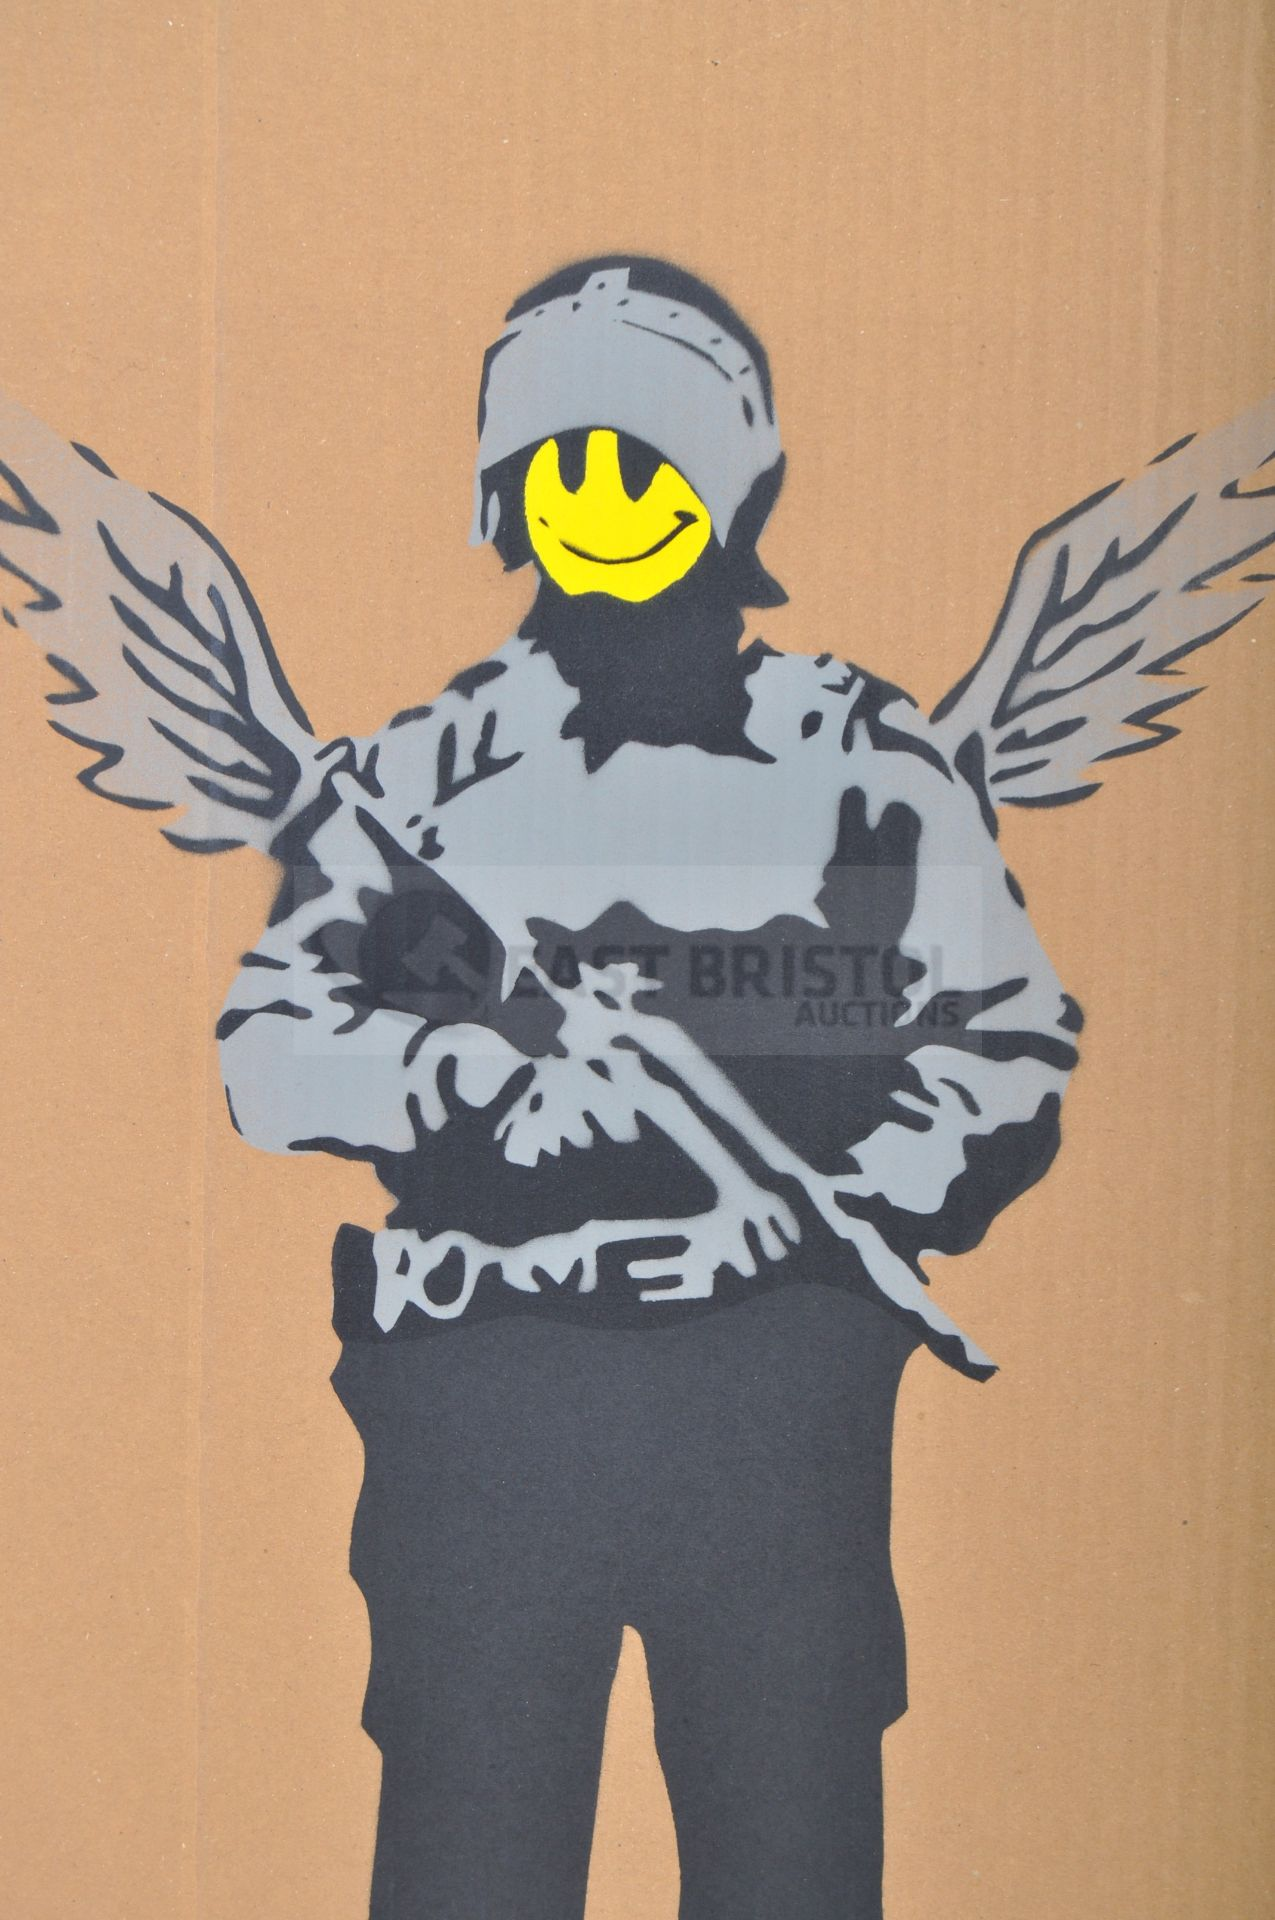 BANKSY - DISMALAND 2015 - FLYING COPPER - Image 2 of 4